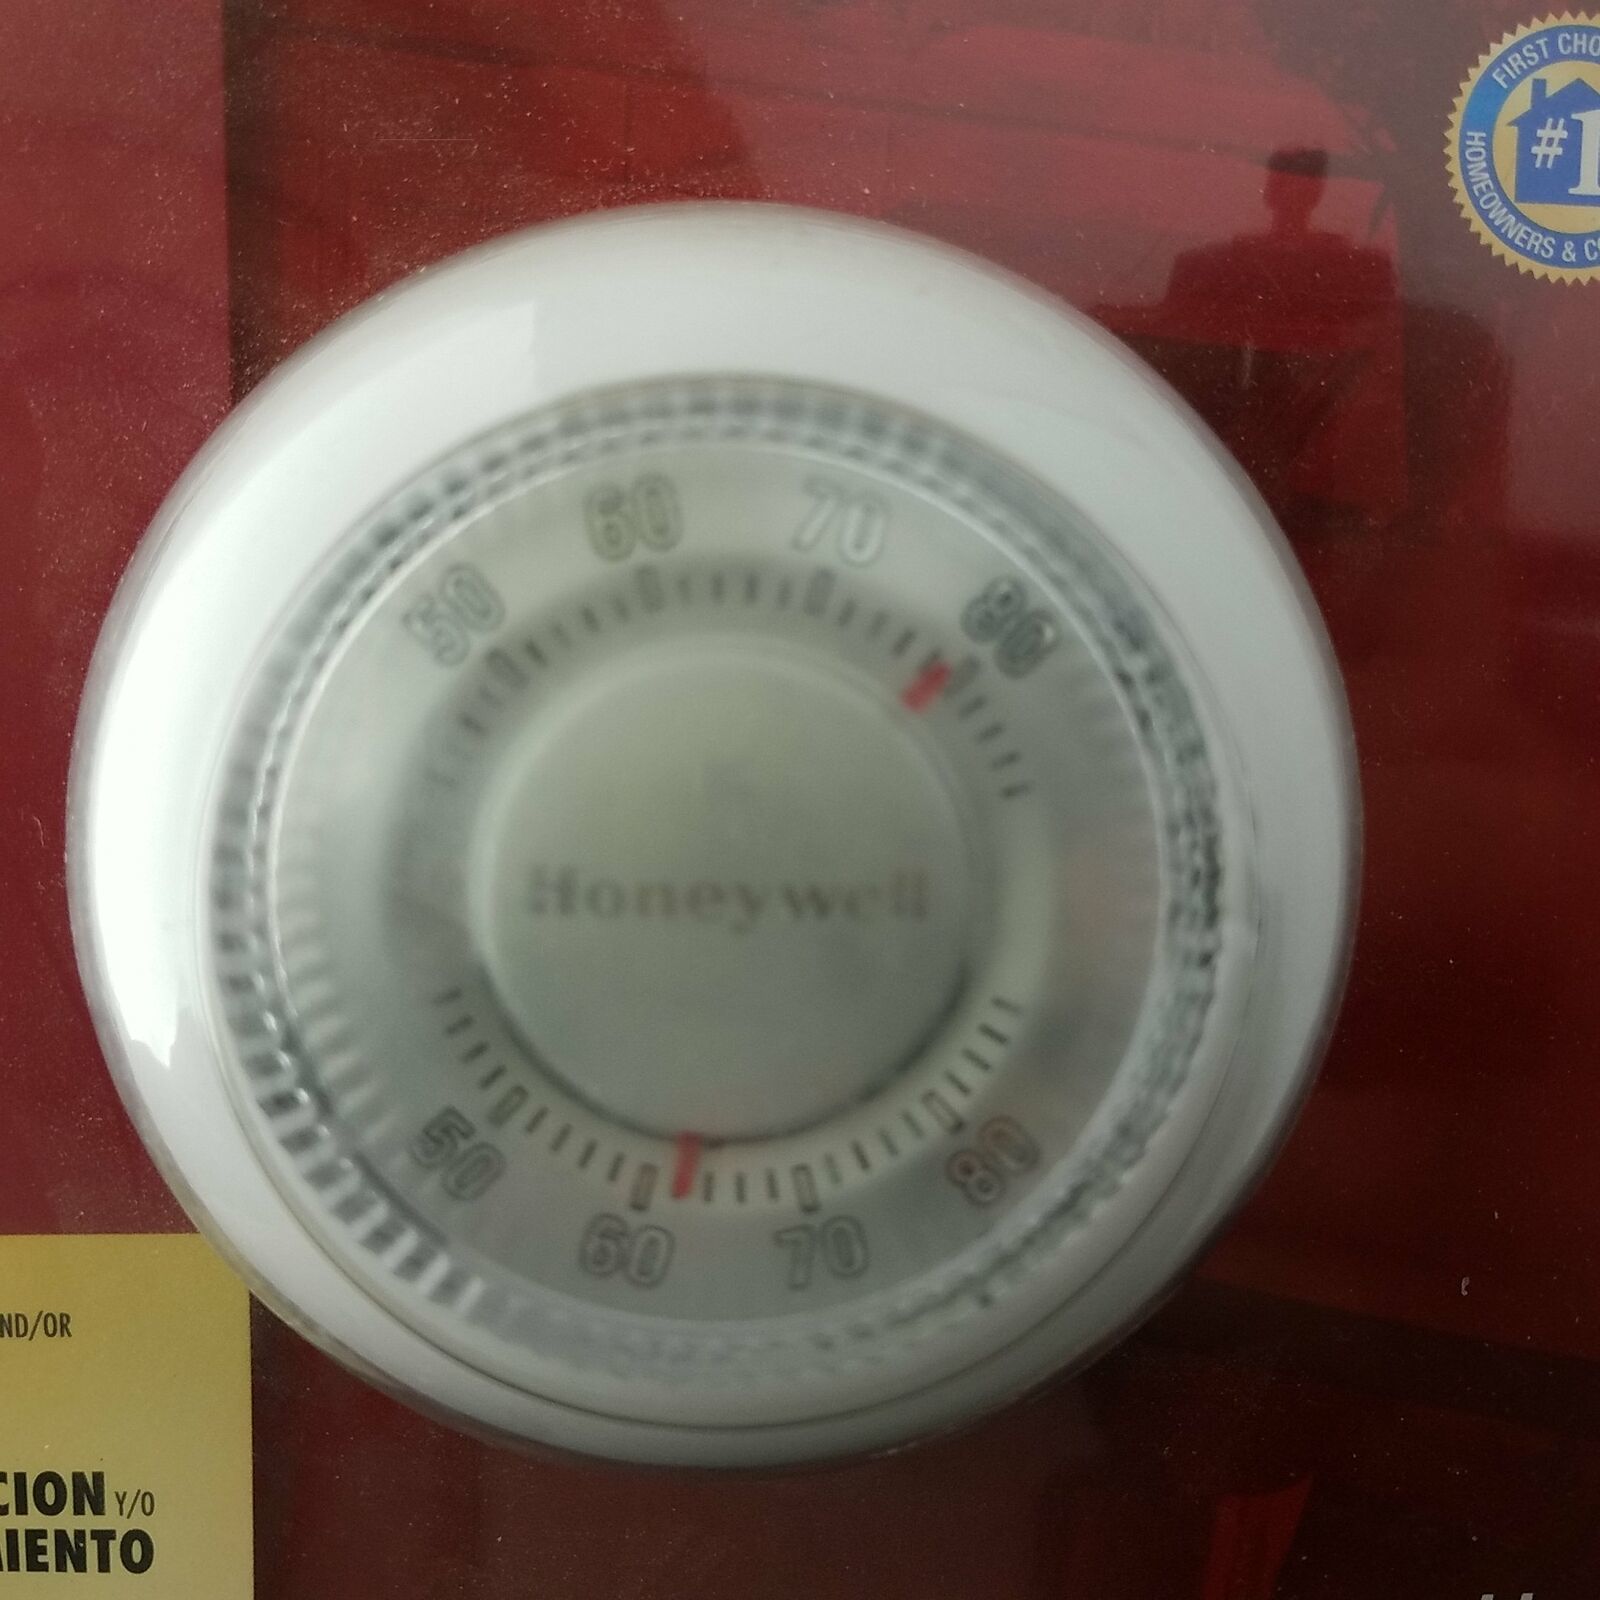 Honeywell Round Heating/Cooling Thermostat and 50 similar items on